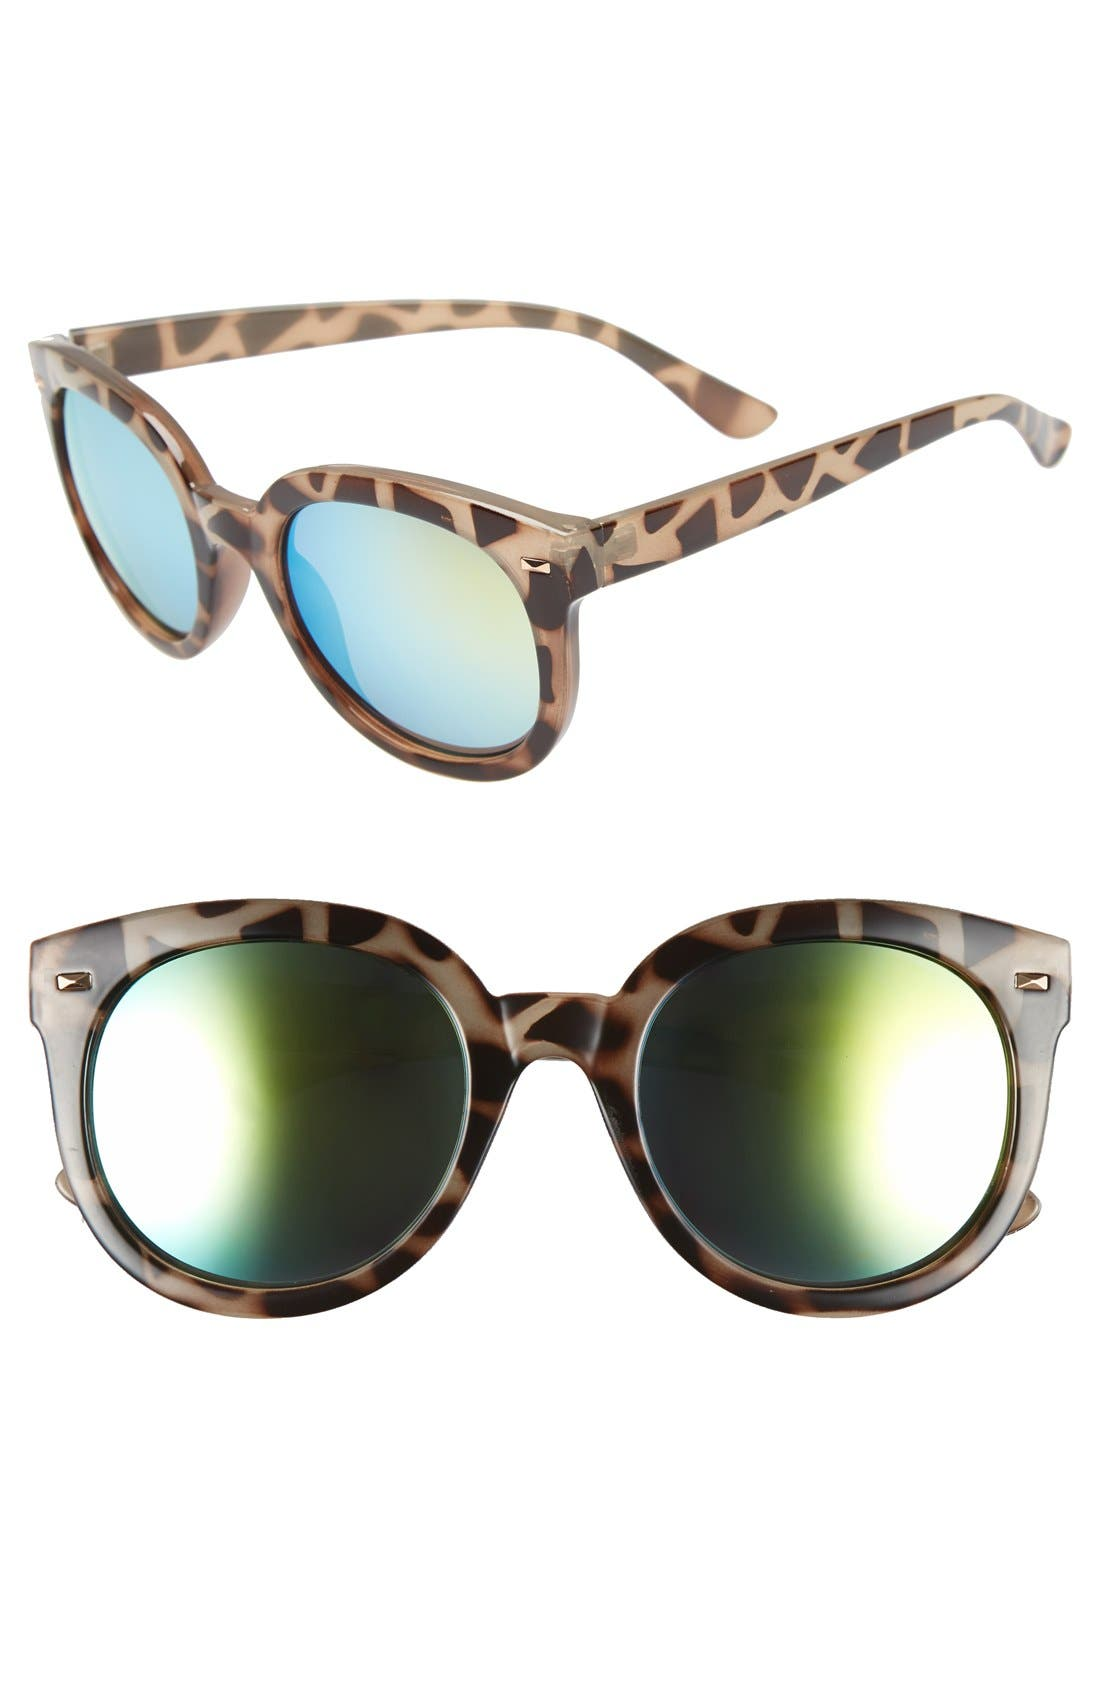 Main Image - BP. 52mm Oversize Mirrored Sunglasses